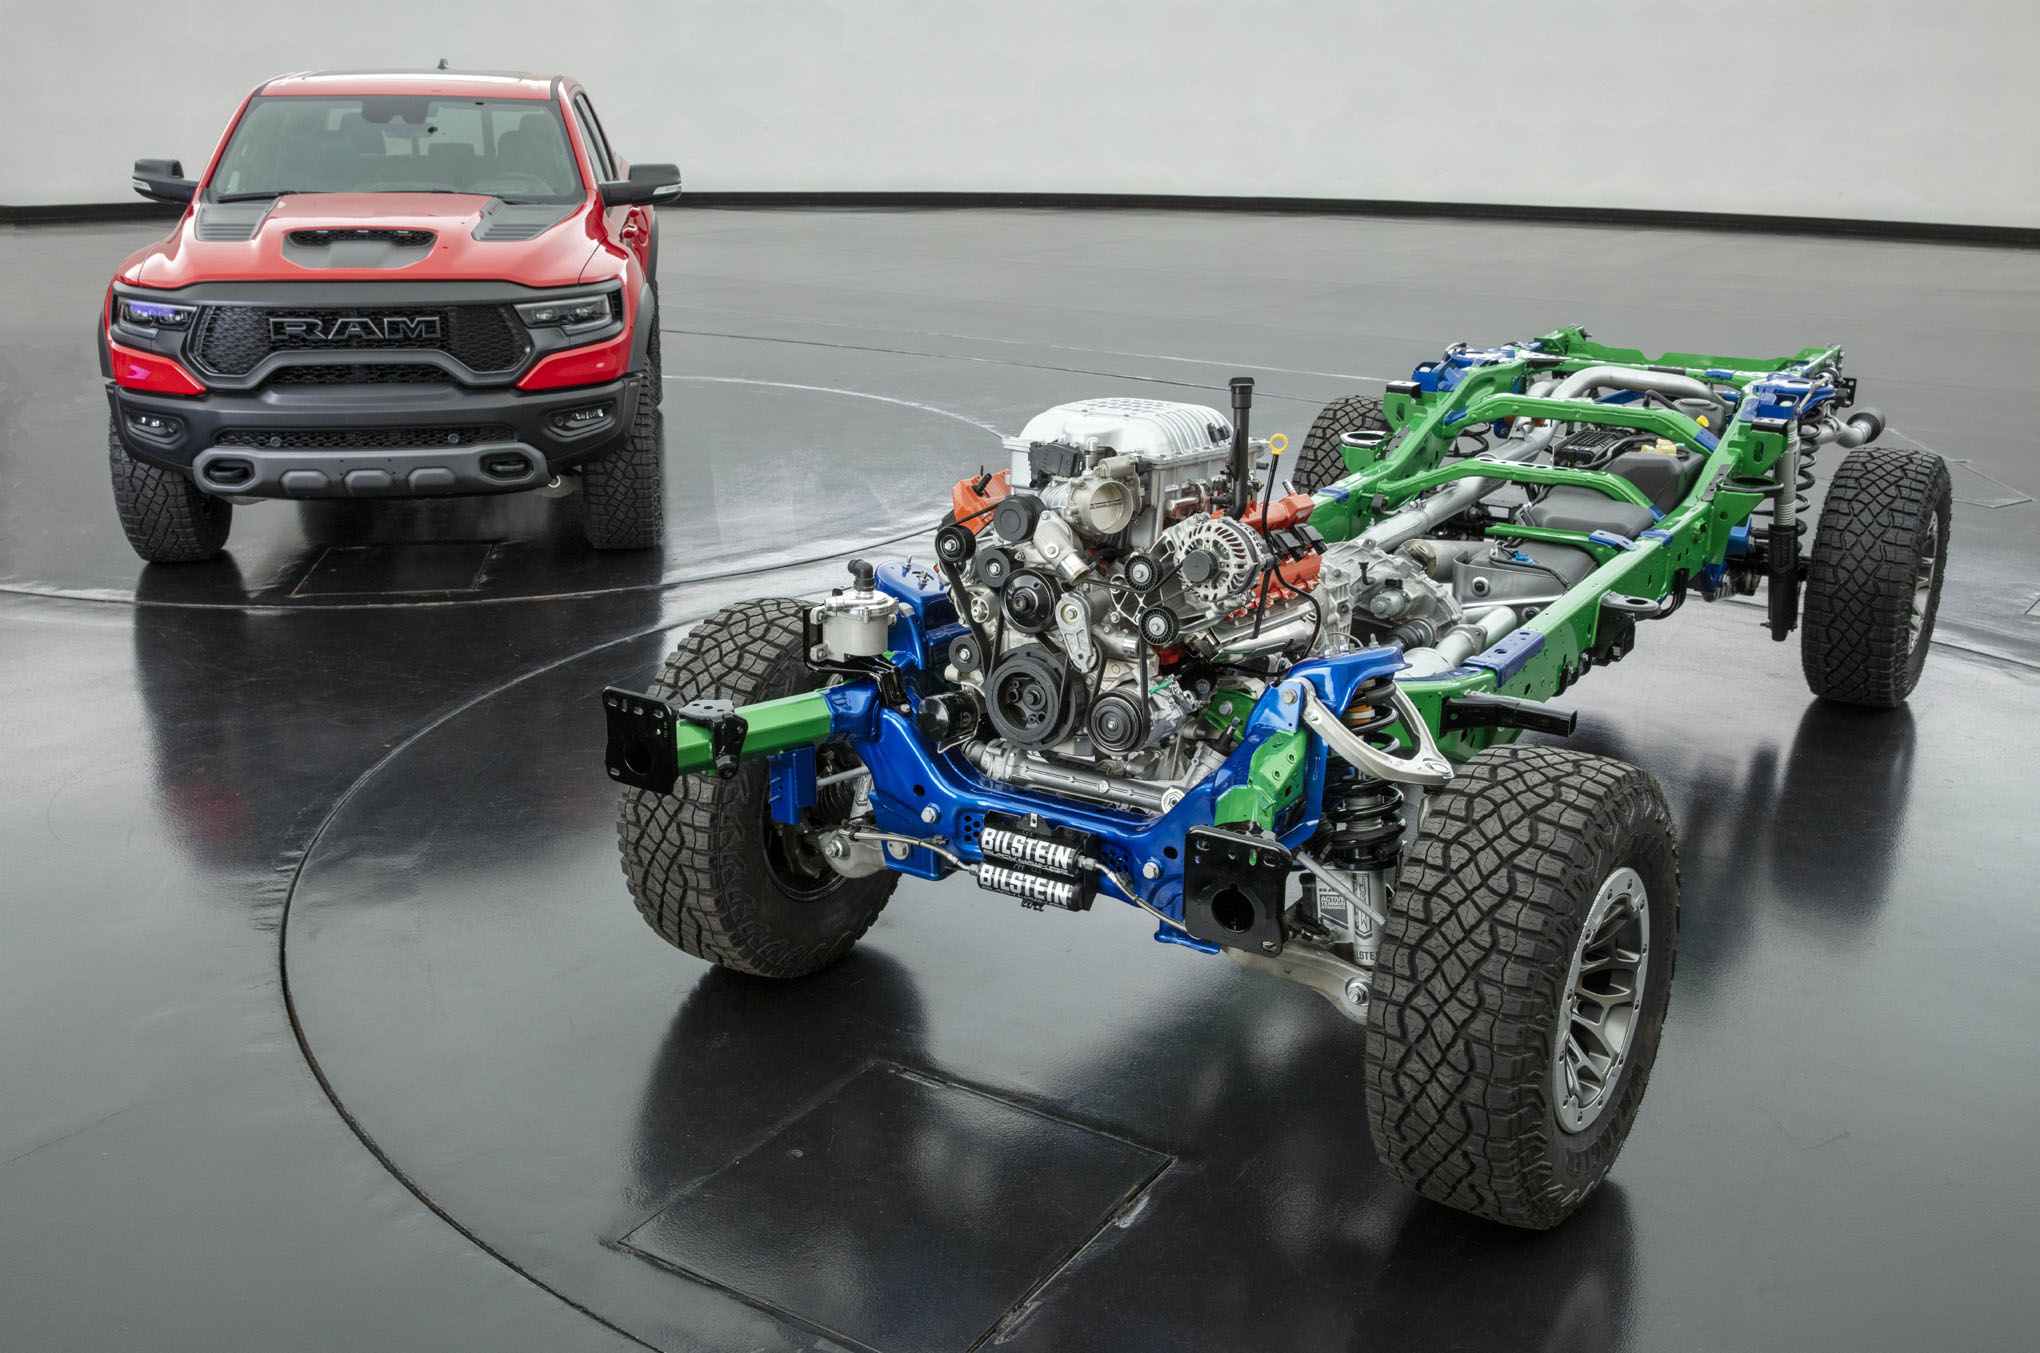 2021 Ram Trx Does Not Have A Hellcat